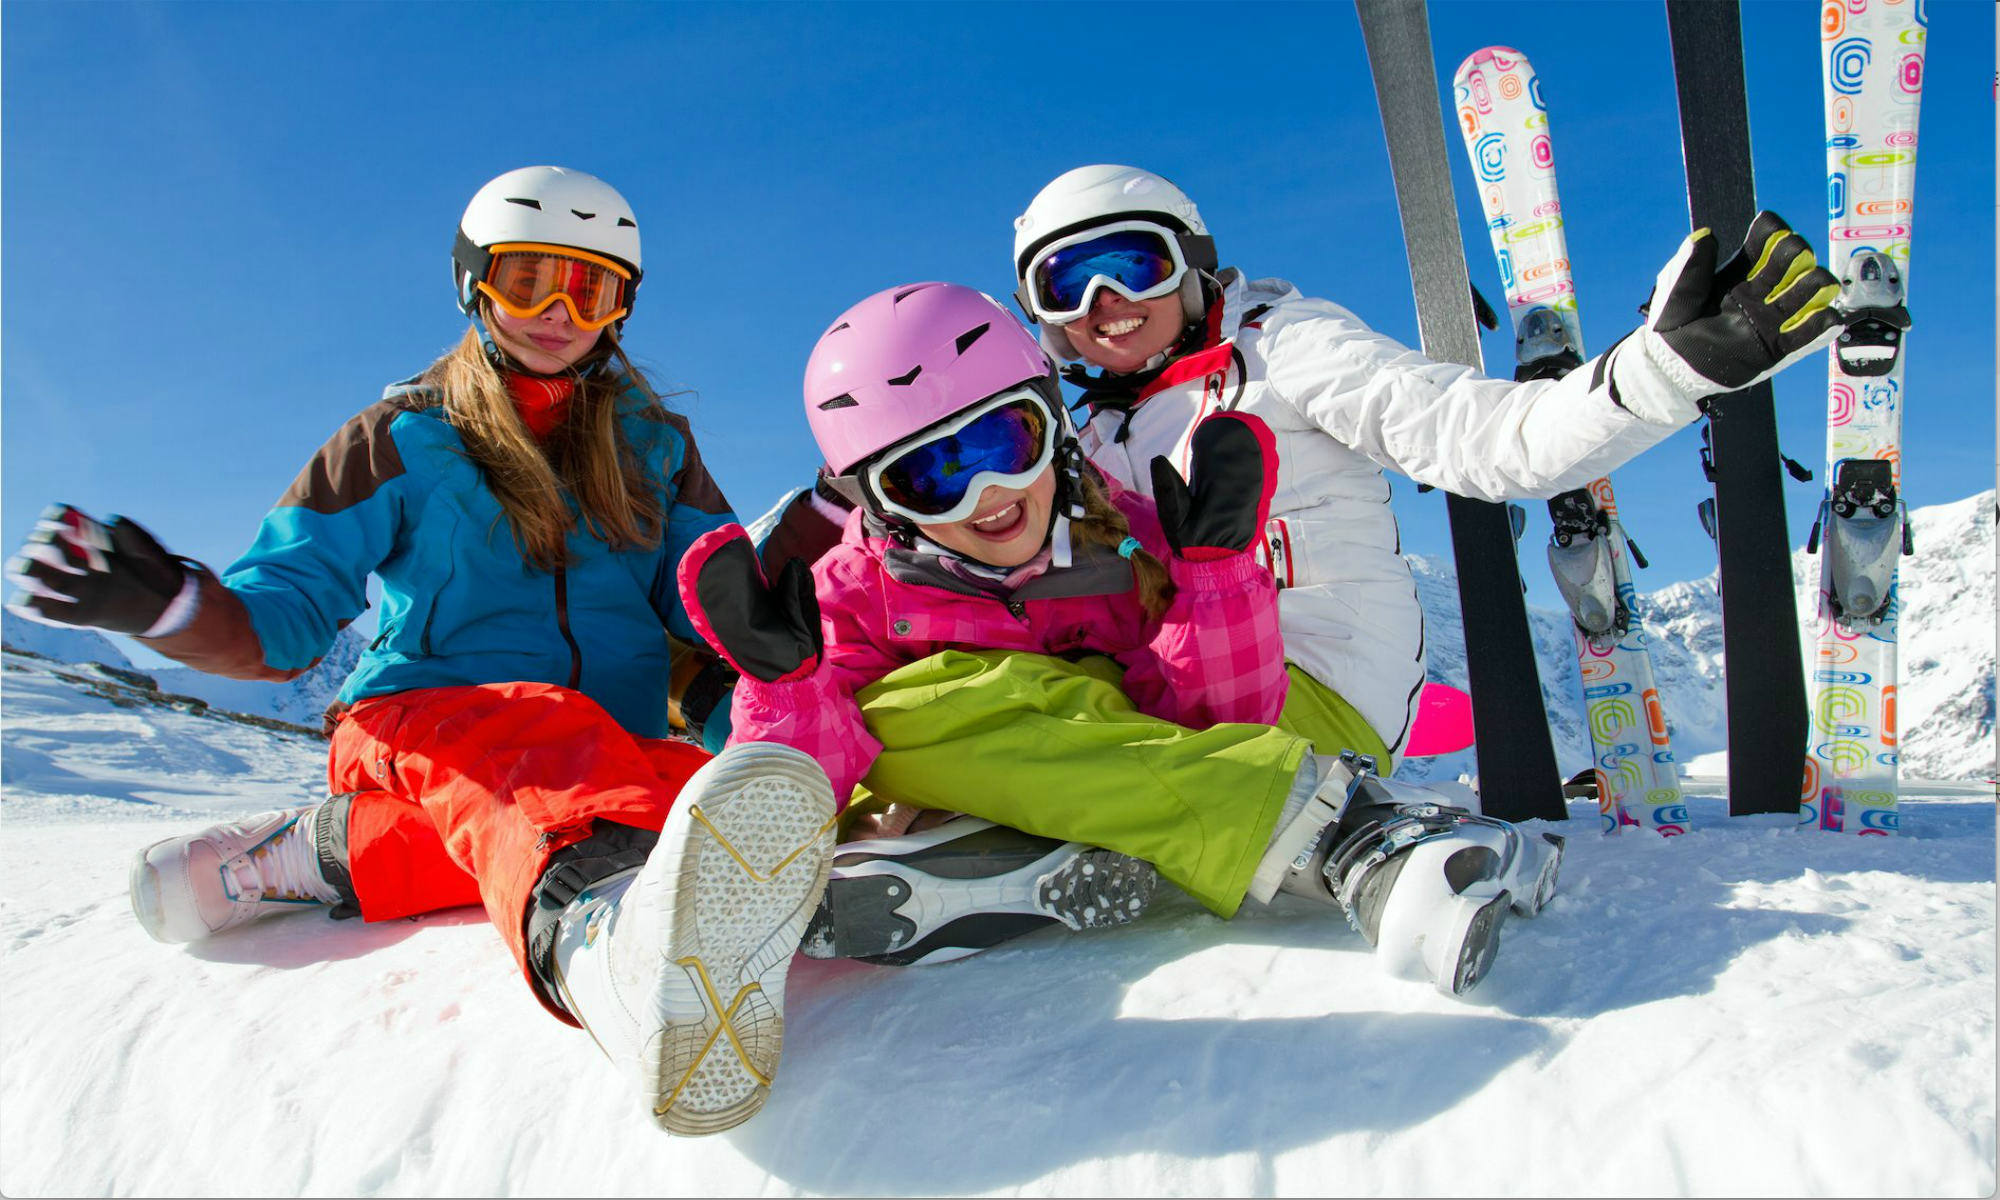 Family of happy skiers sitting on a snowy slope in Méribel.